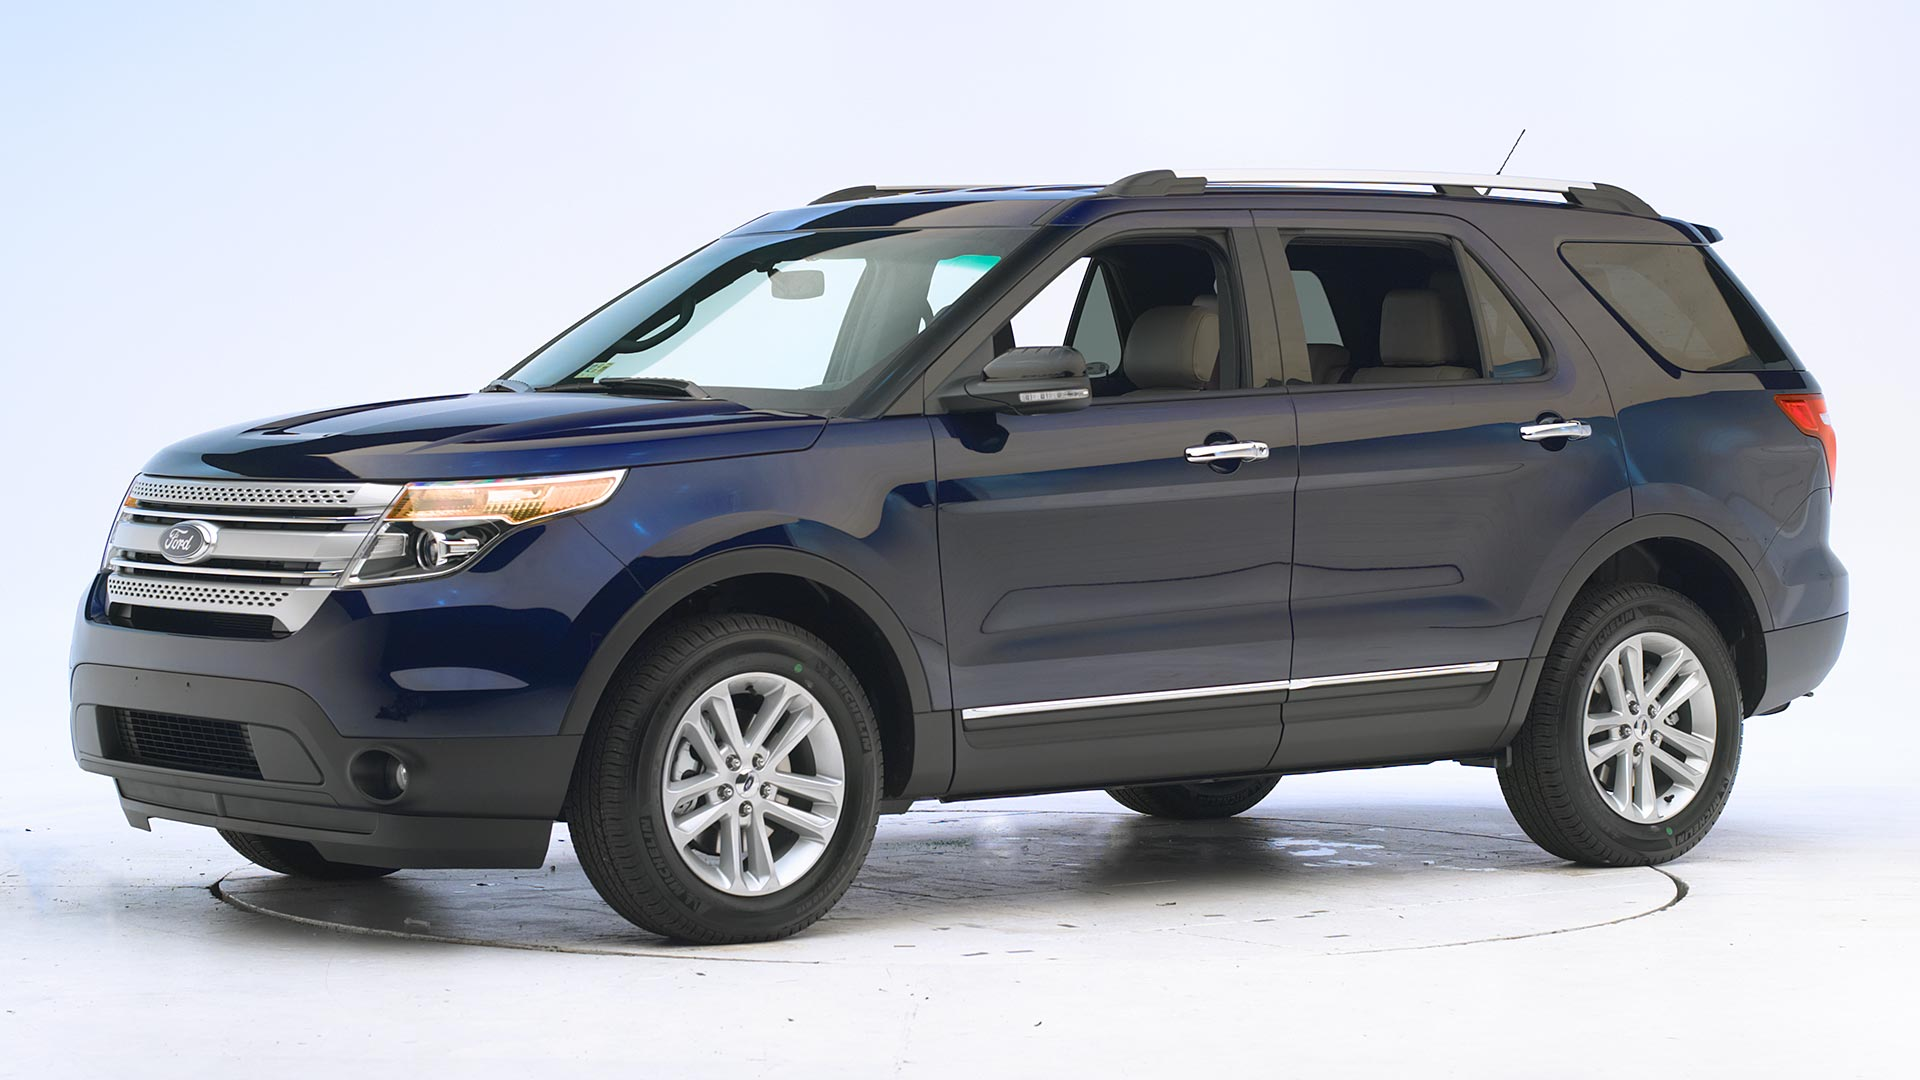 2012 Ford Explorer 4-door SUV